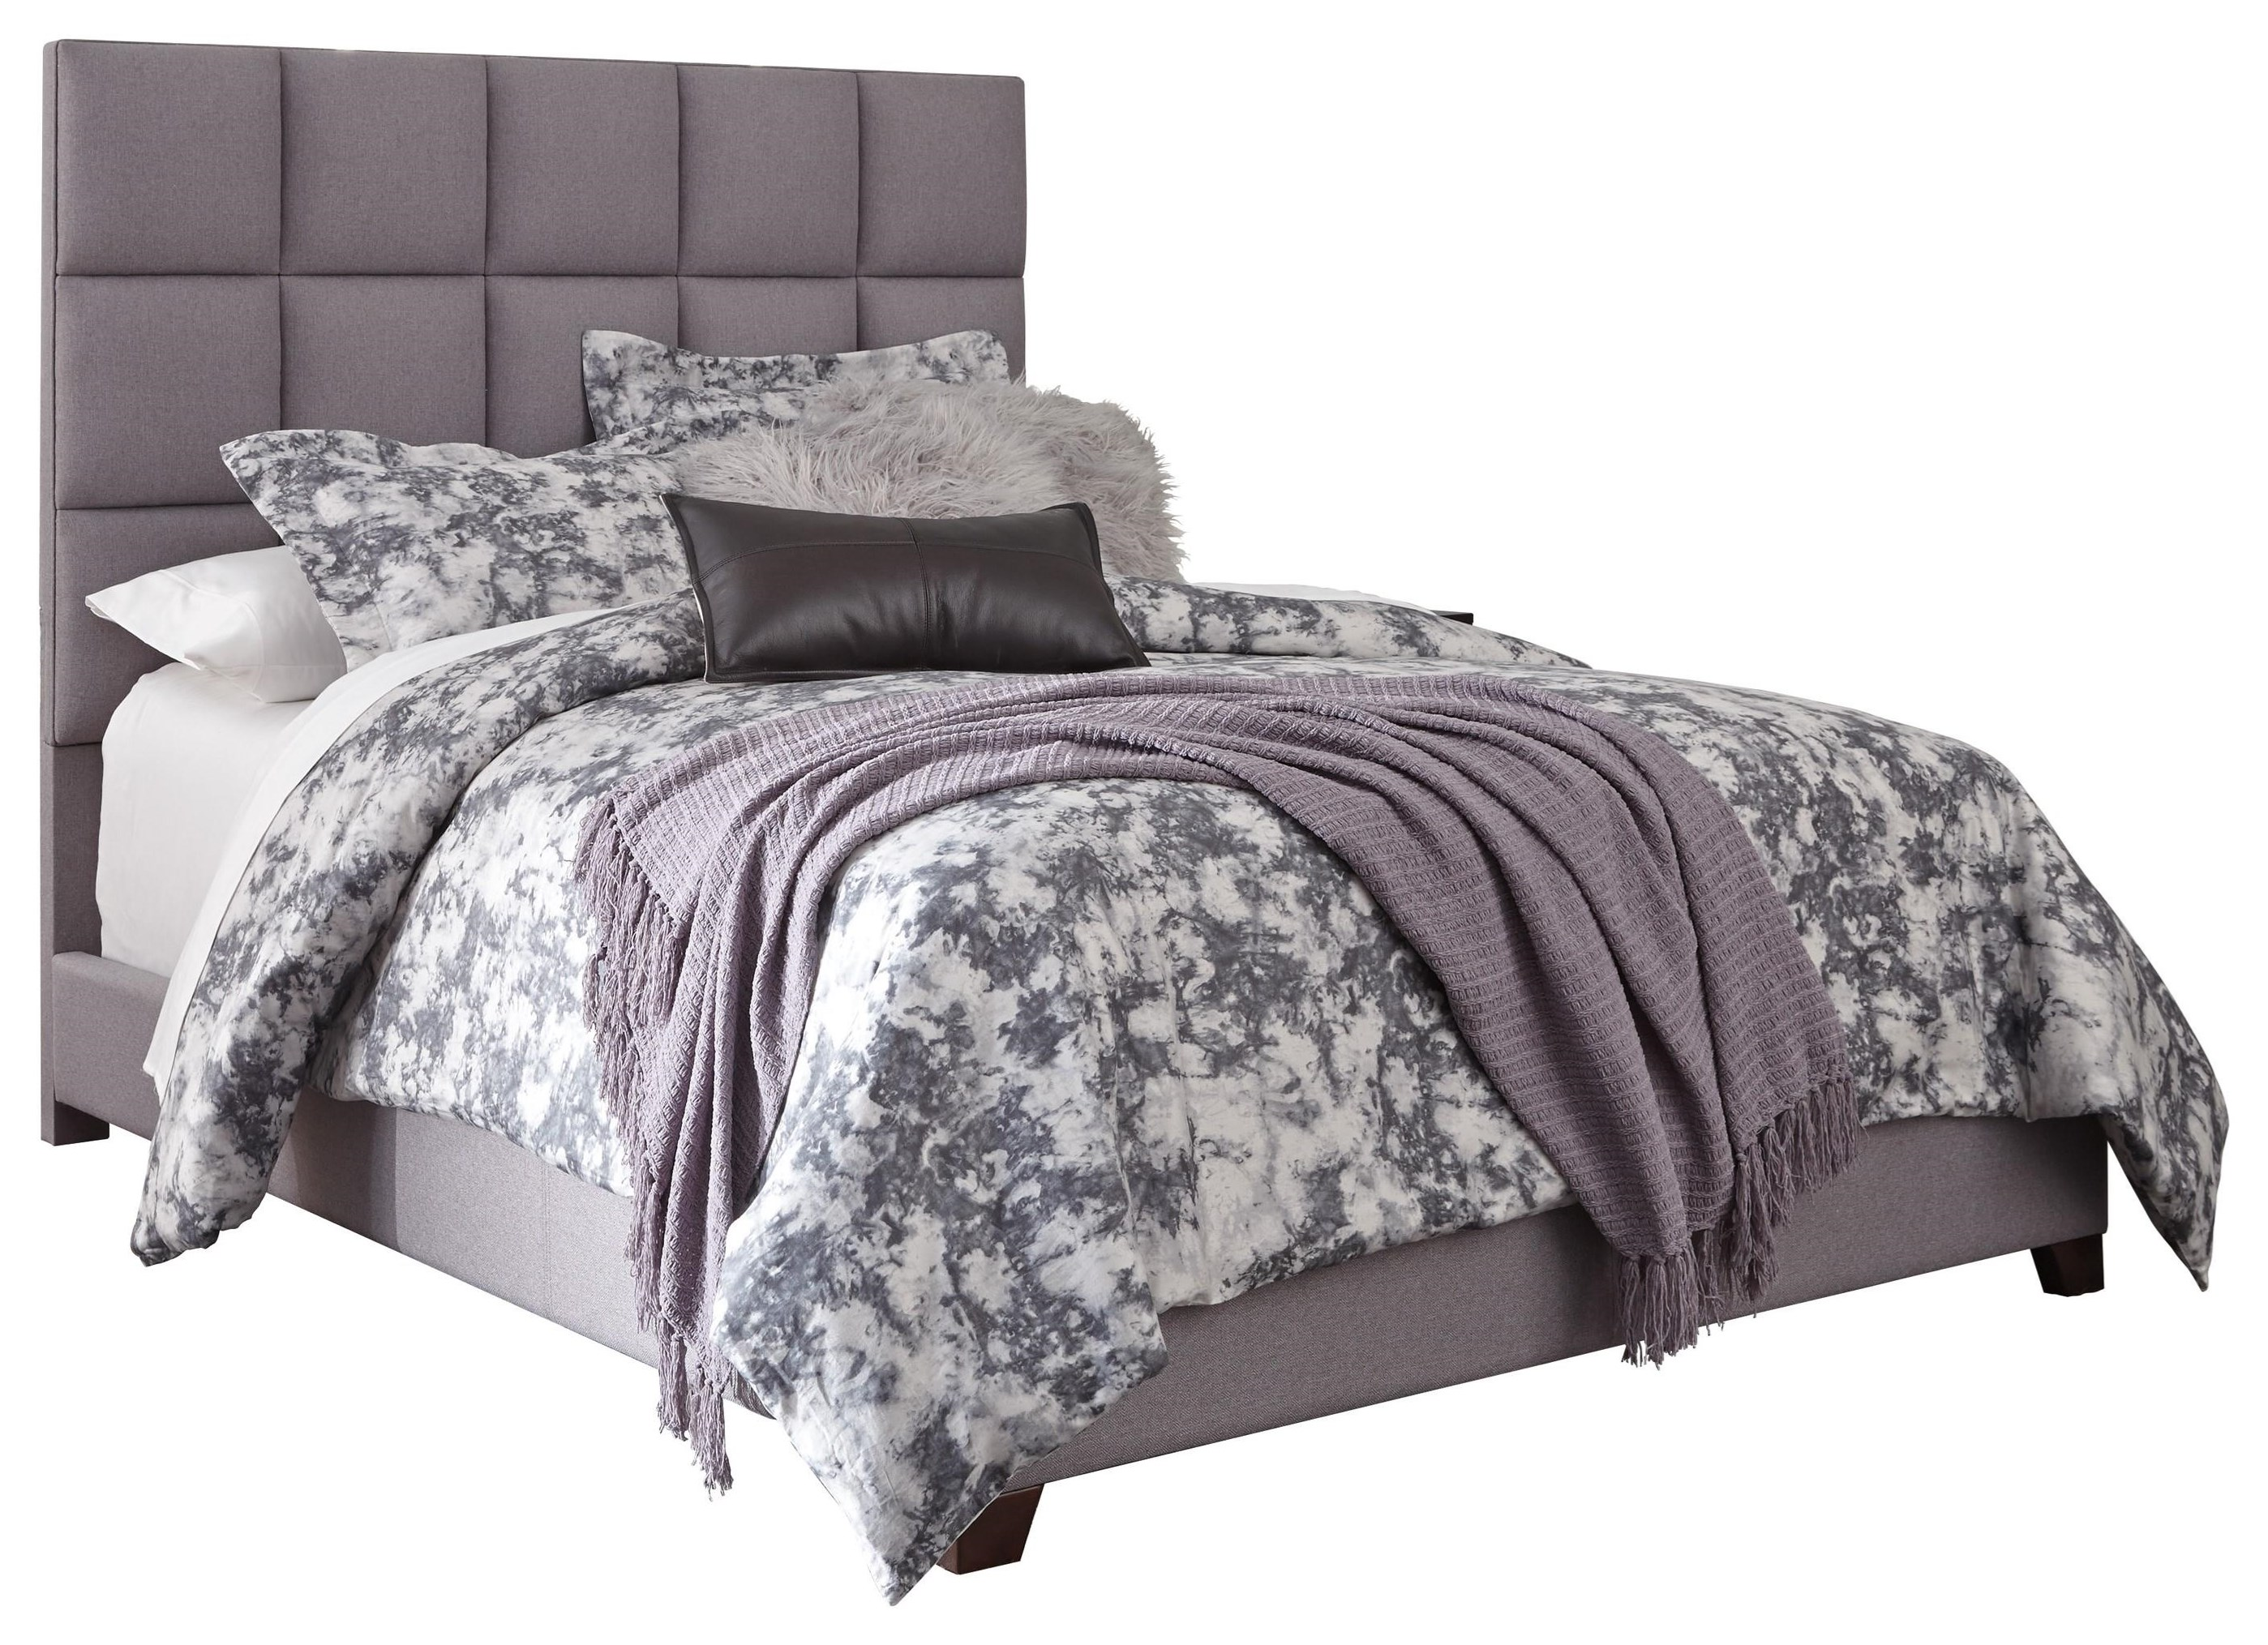 Dolante Queen Bed by Signature Design by Ashley at HomeWorld Furniture